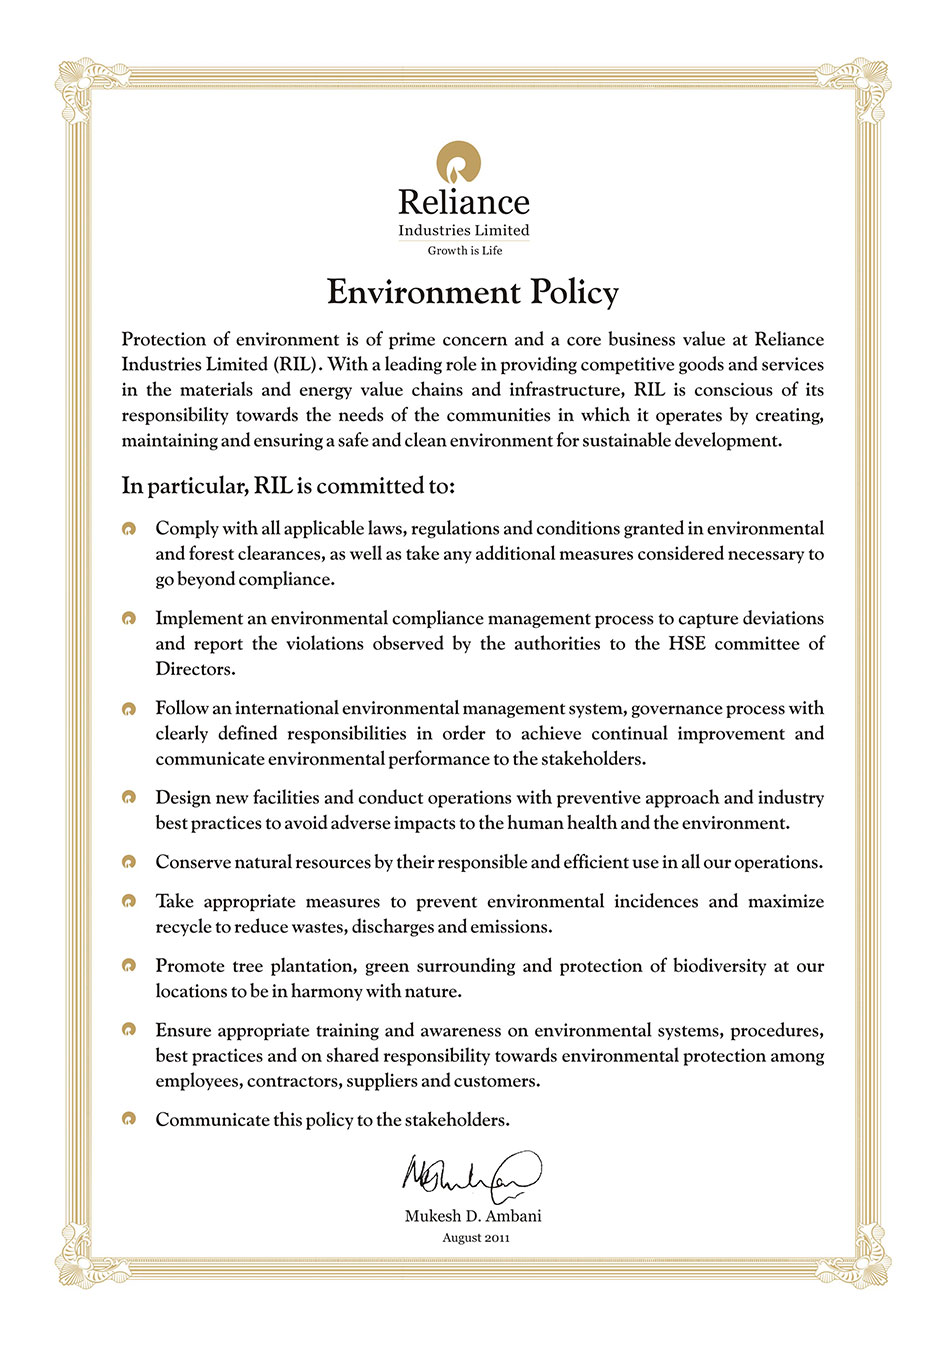 Health Safety Amp Environment Reliance Industries Limited